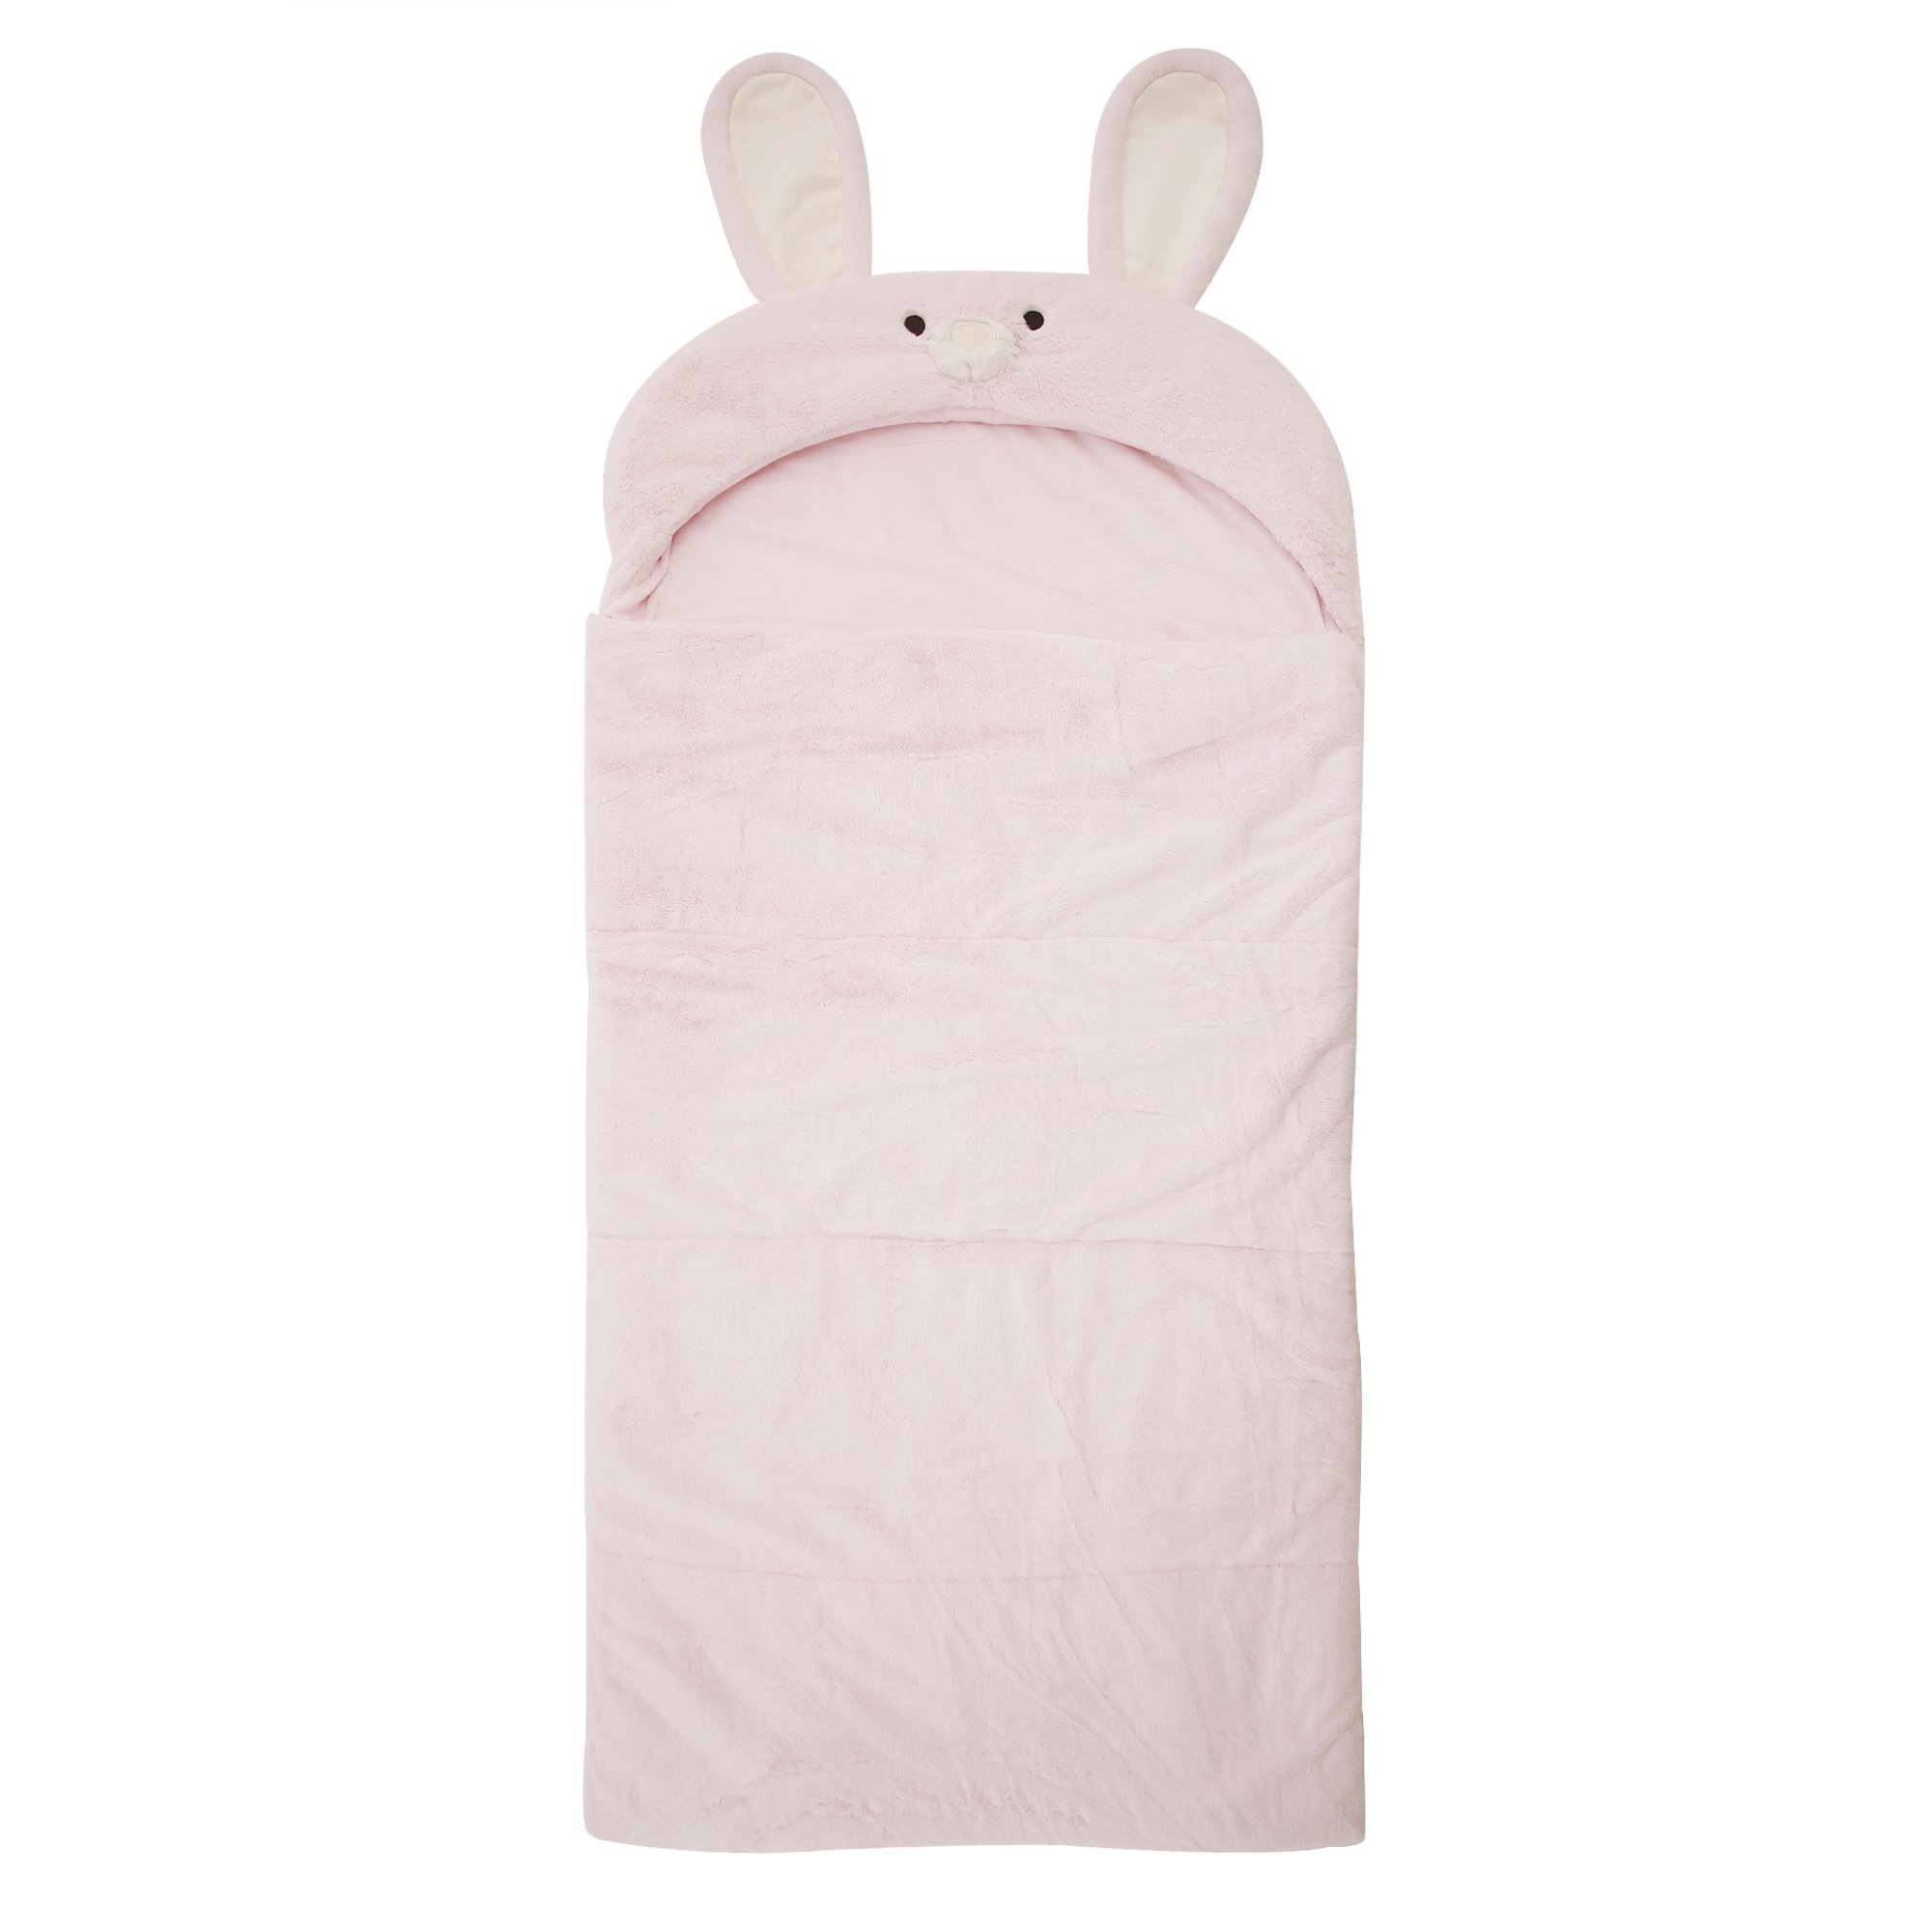 Best Home Fashion Plush Faux Fur Hooded Rabbit Animal Sleeping Bag - Pink - 27'' W x 59'' L - (1 Sleeping Bag)